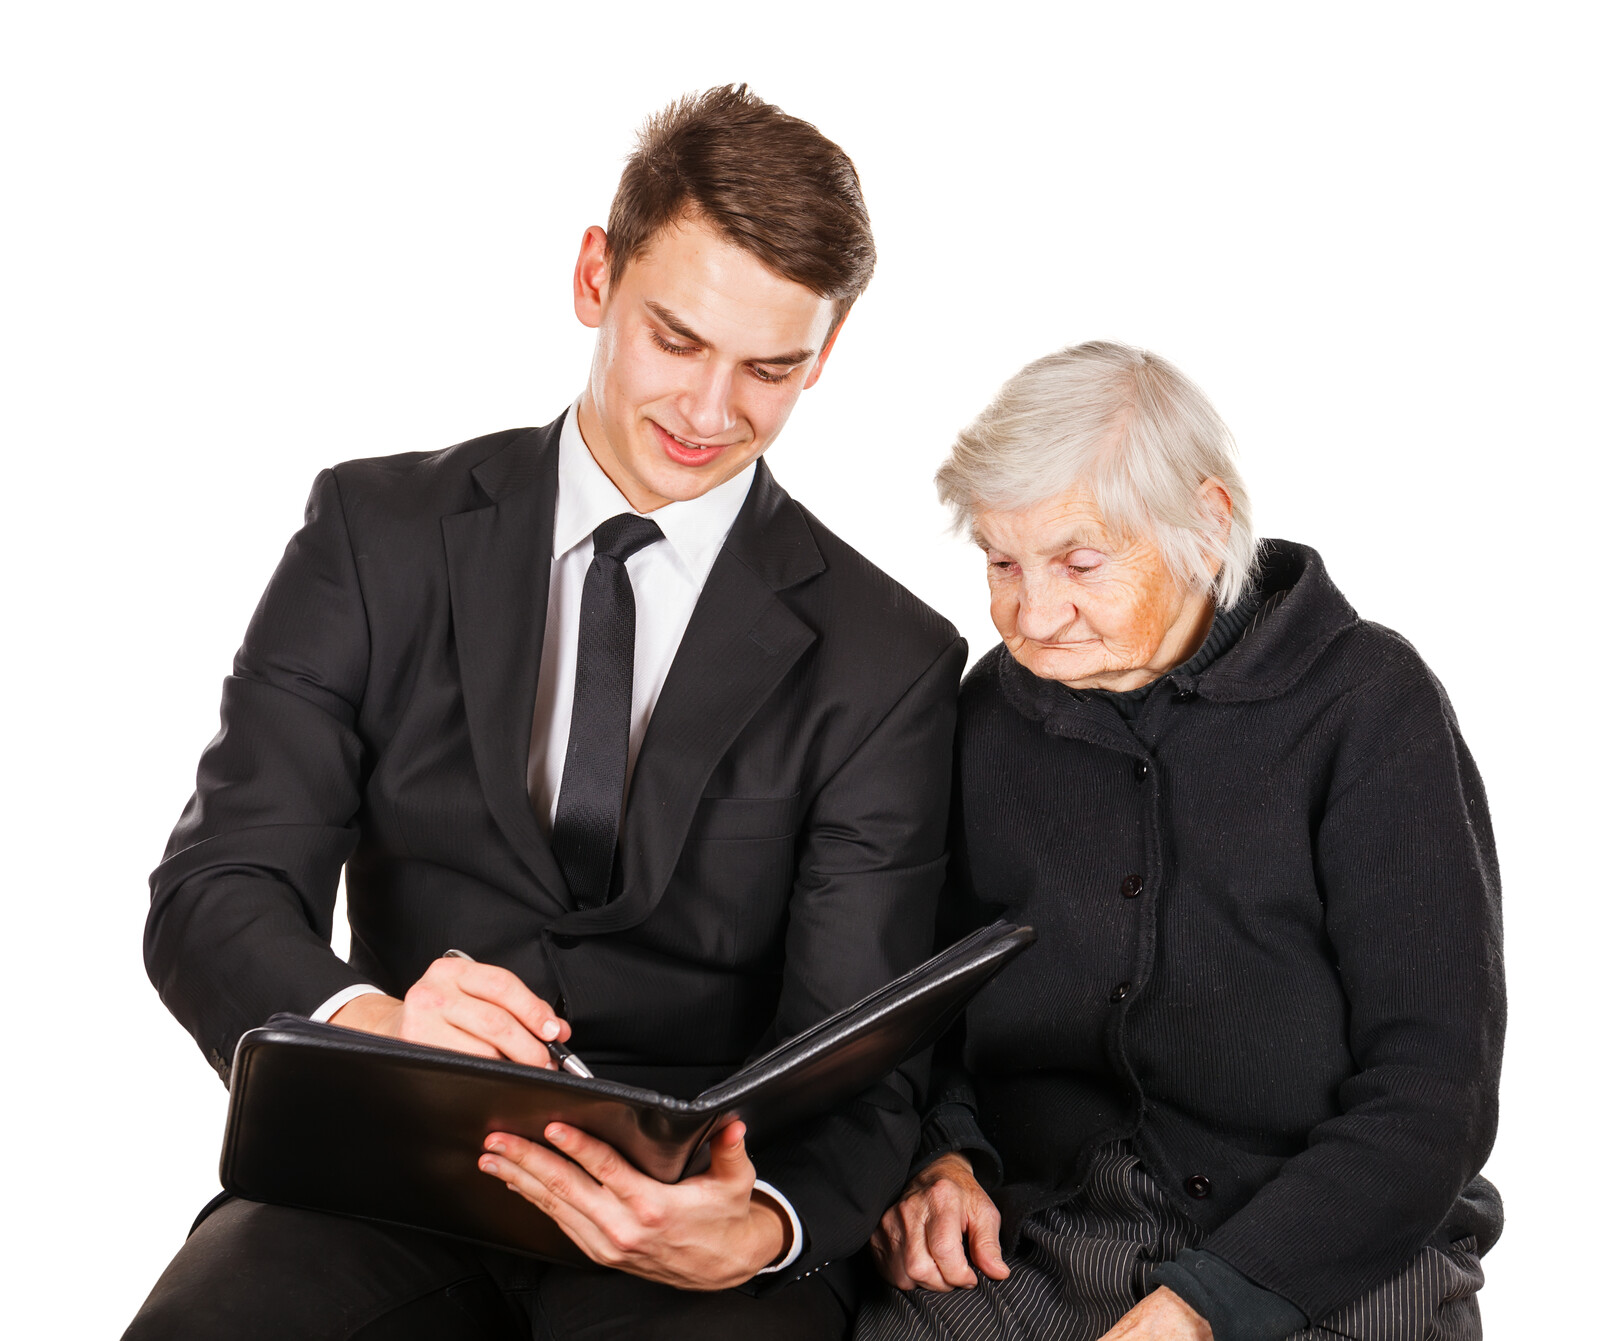 Young business man talking with a senior woman over a contract